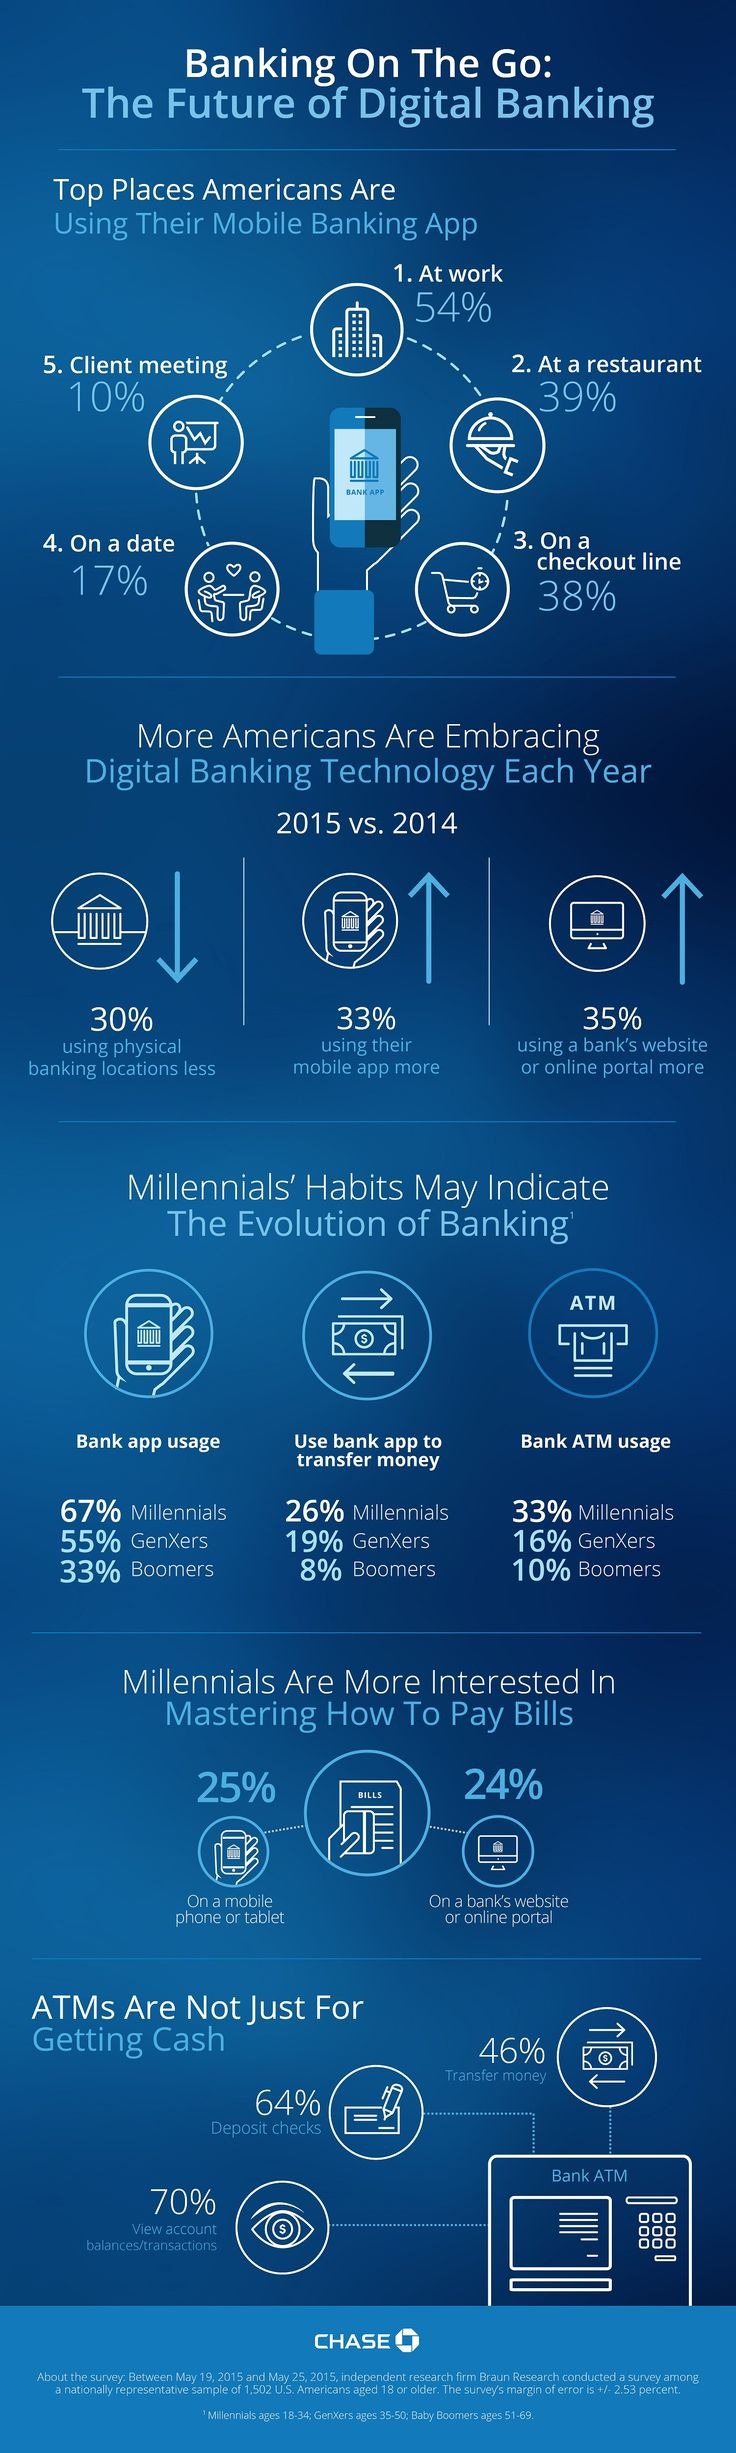 JPMorgan ChaseVoice: Banking On The Go: The Future Of Digital Banking [Infographic] - Forbes